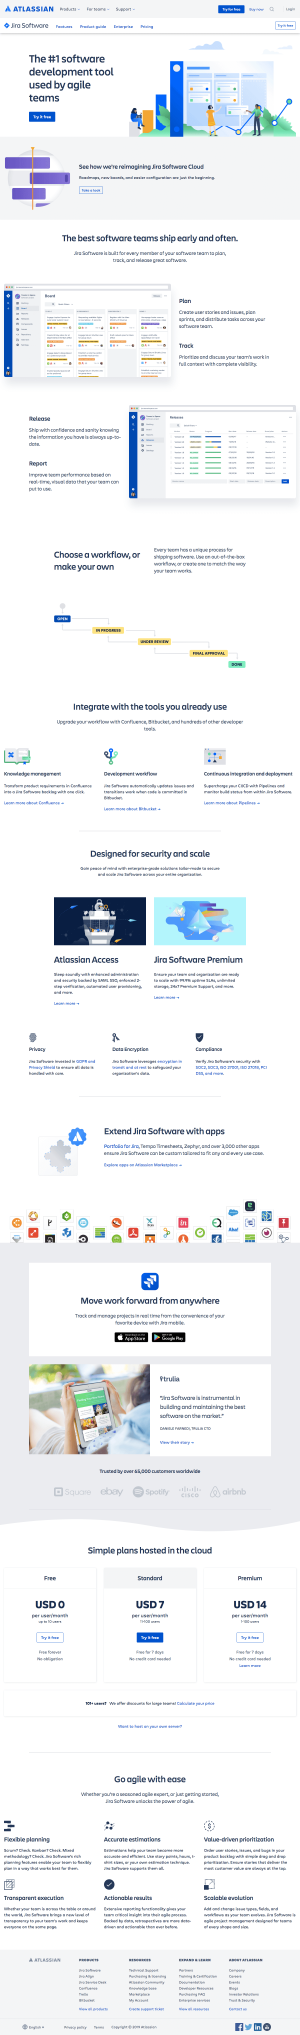 Atlassian - Features page 3